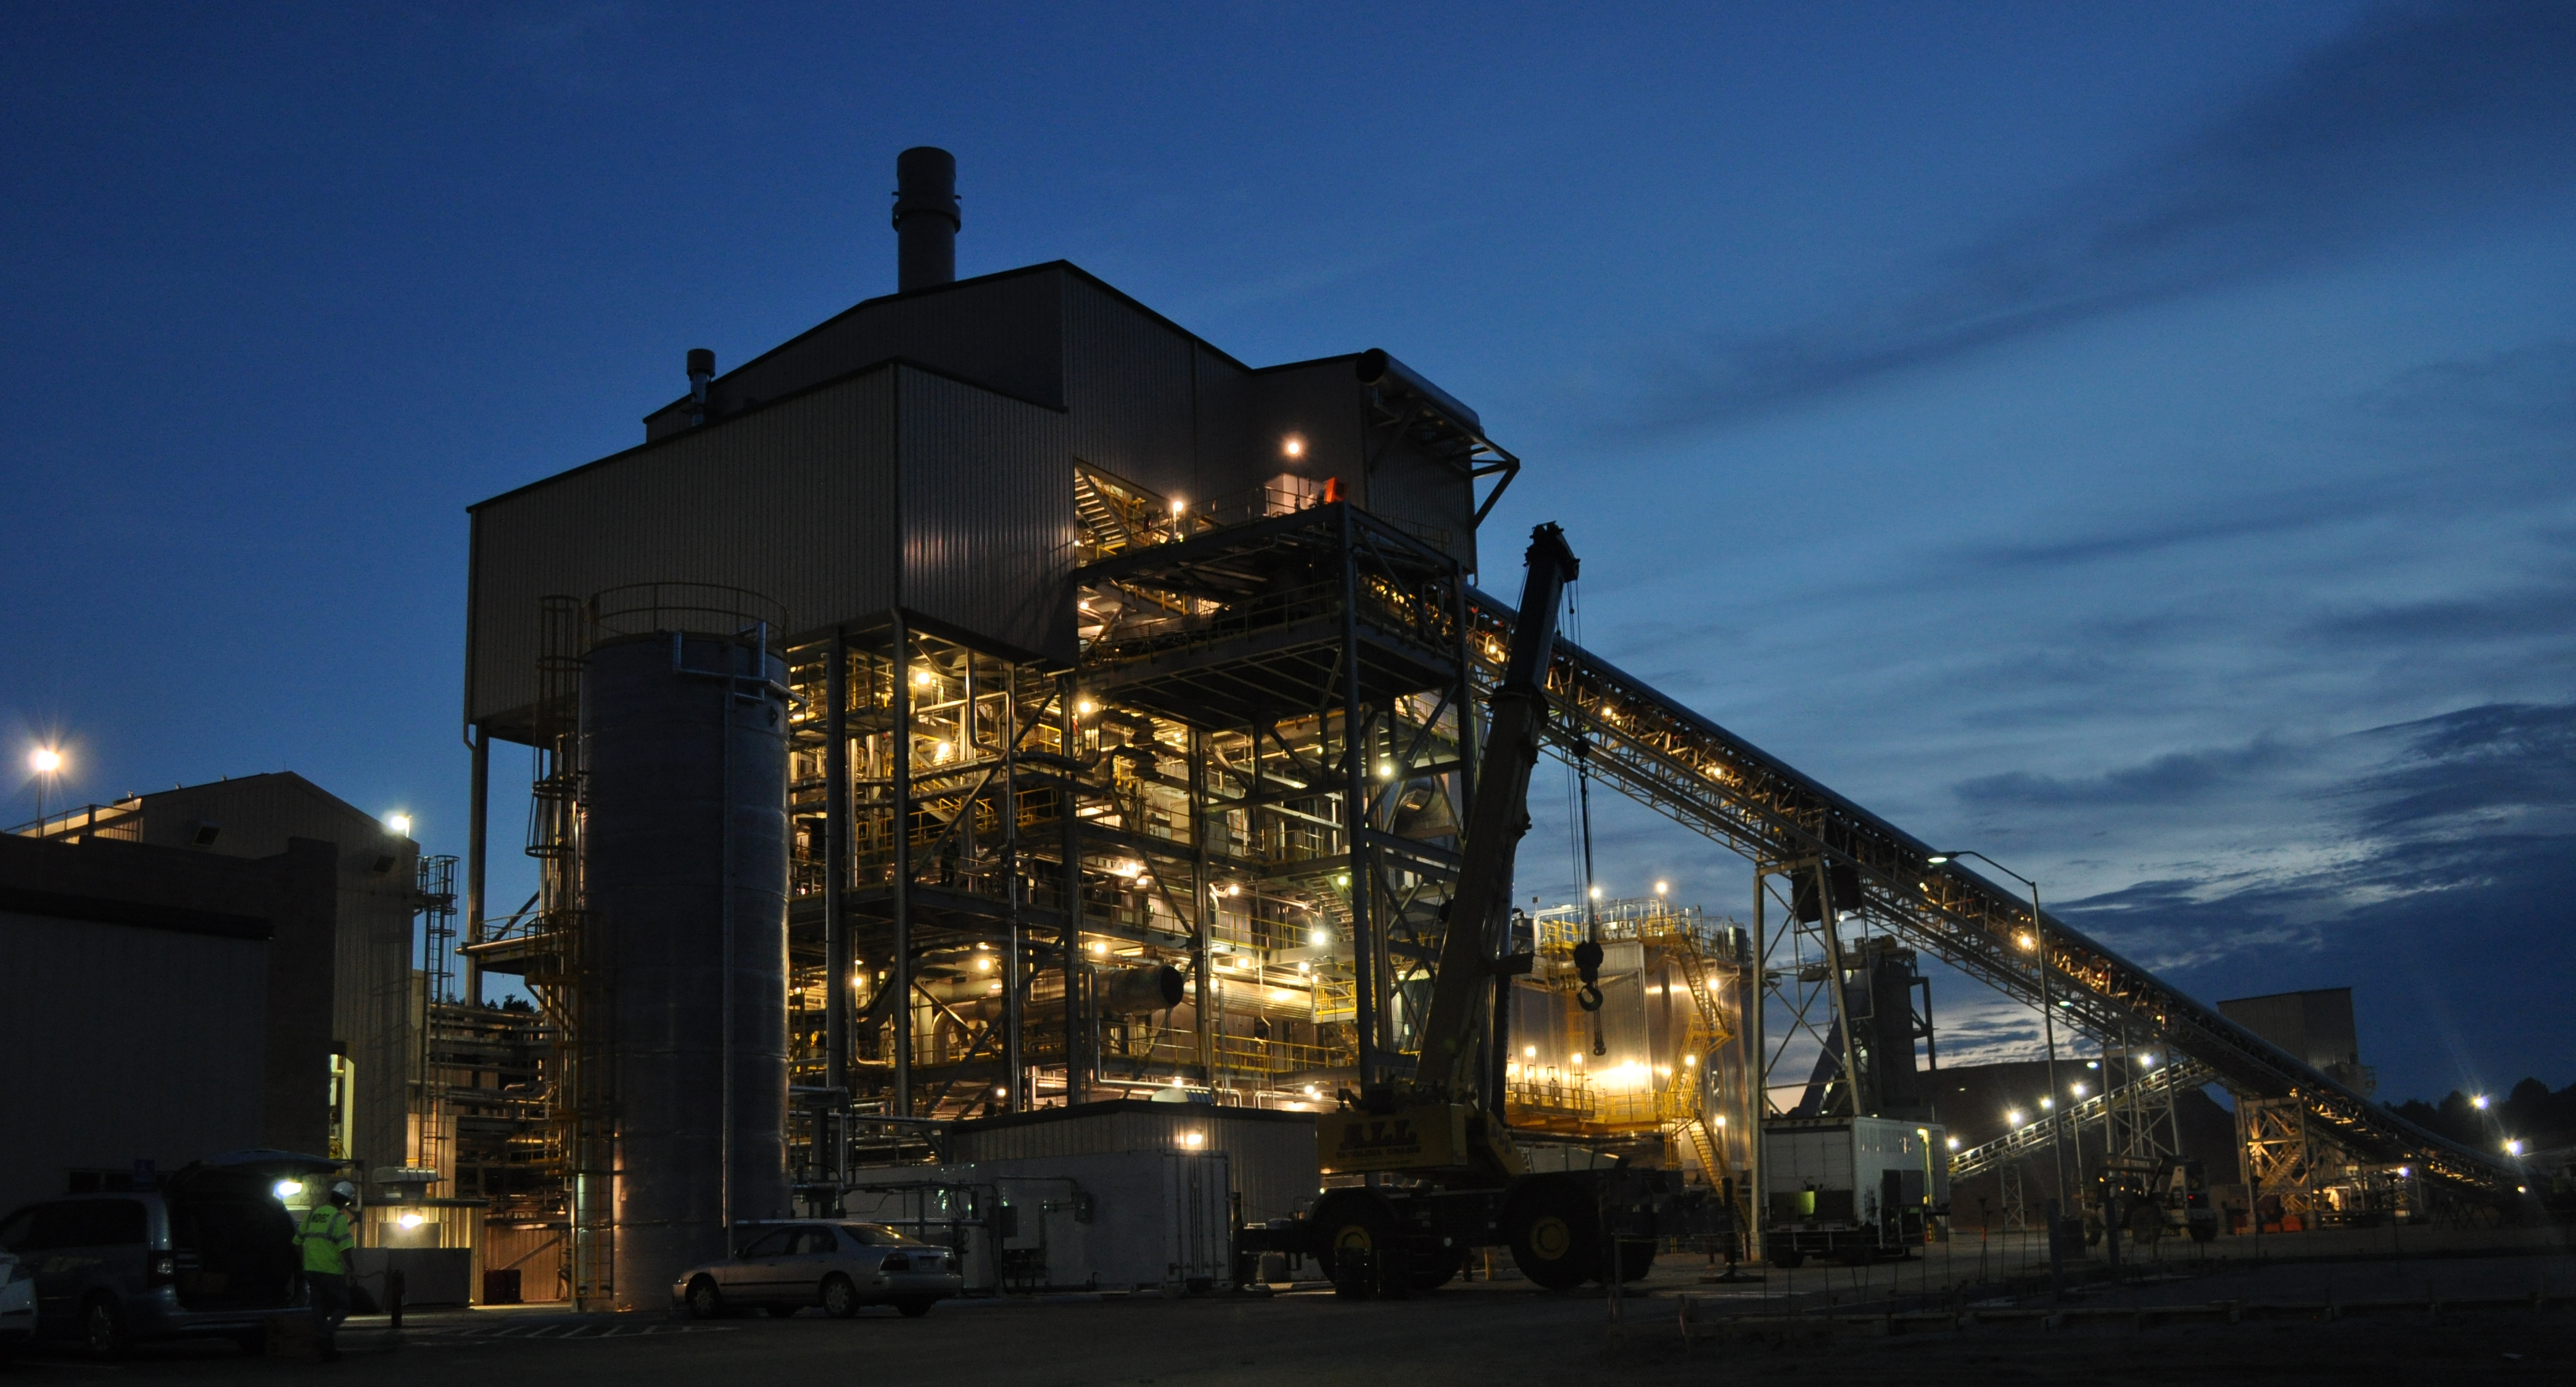 NOVEC biomass plant at night